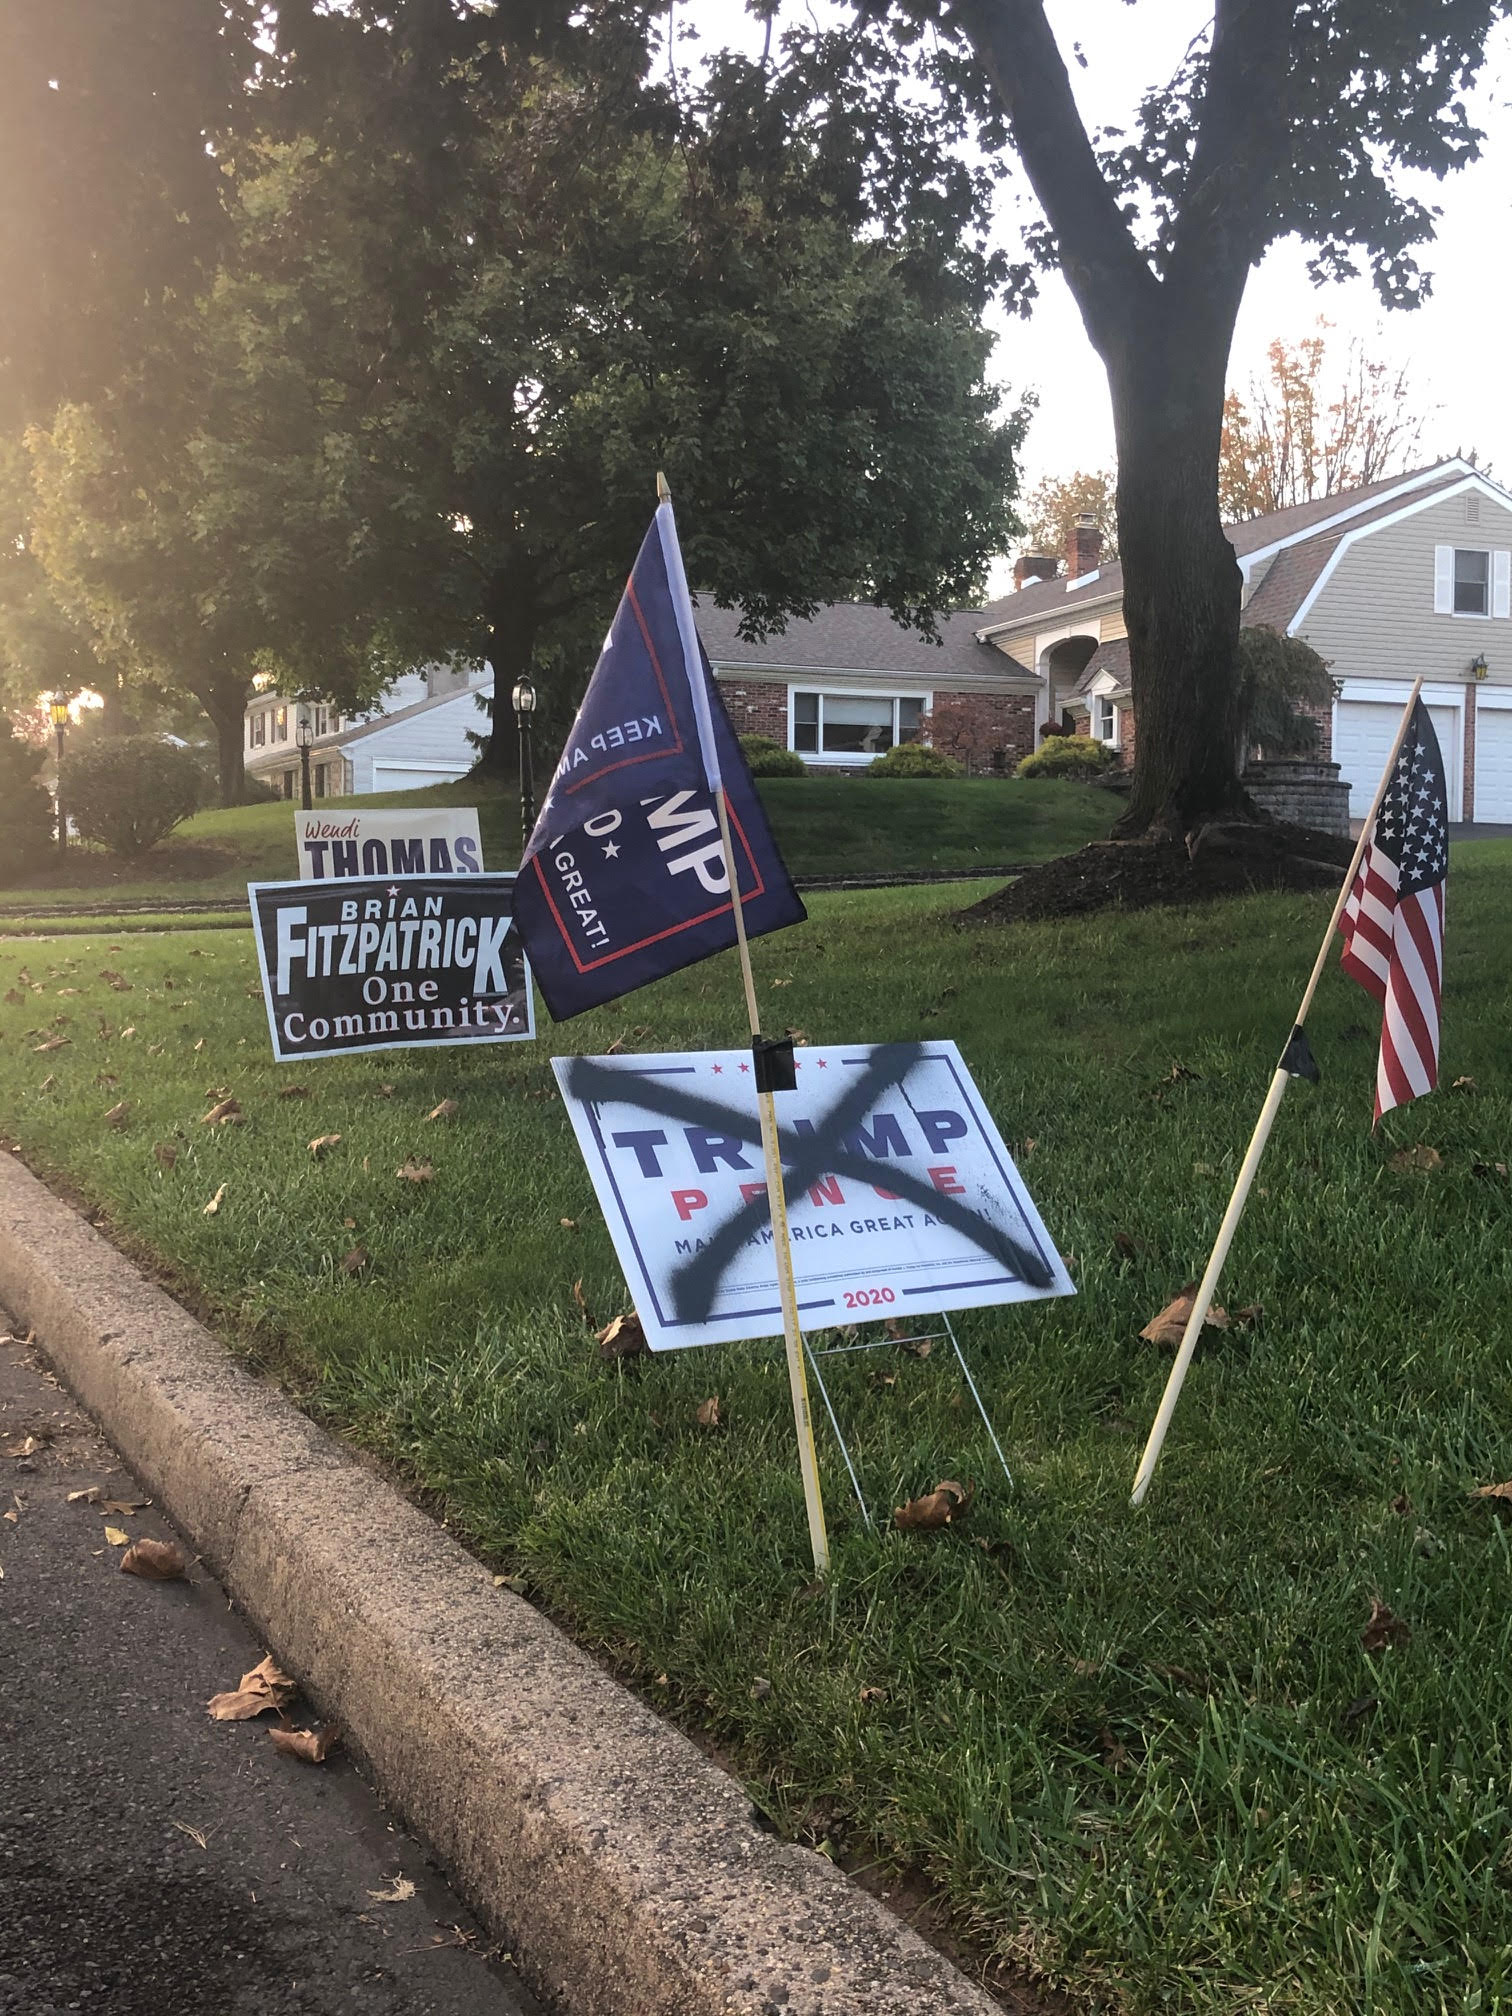 In Kathryn Jankowski's home of Bucks County, PA, front lawns are littered with competing political signs.